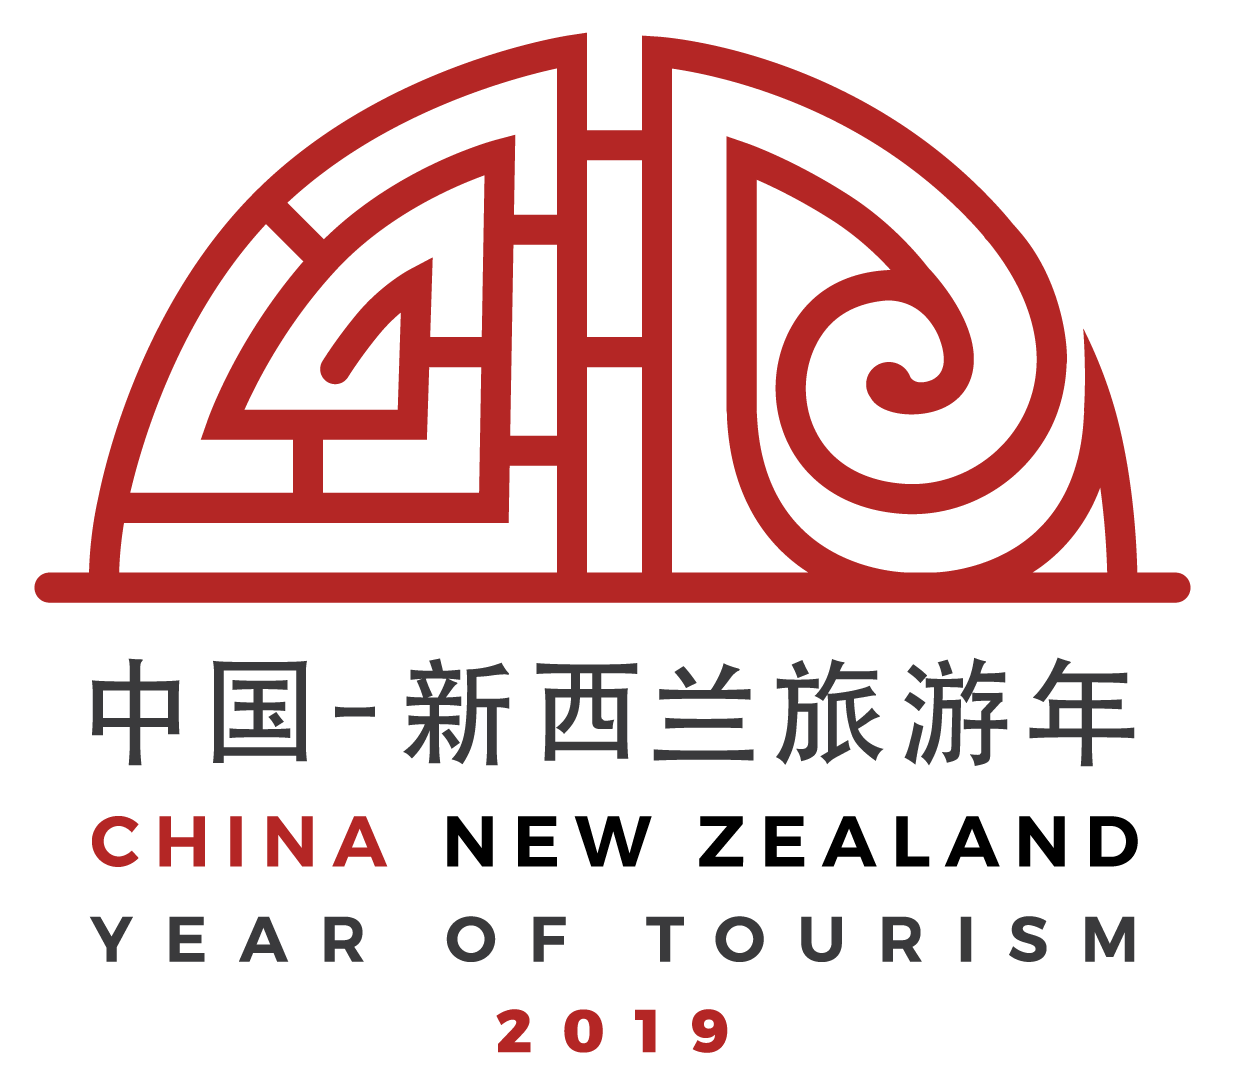 Calendar For Year 2019 New Zealand With Home China NZ Of Tourism